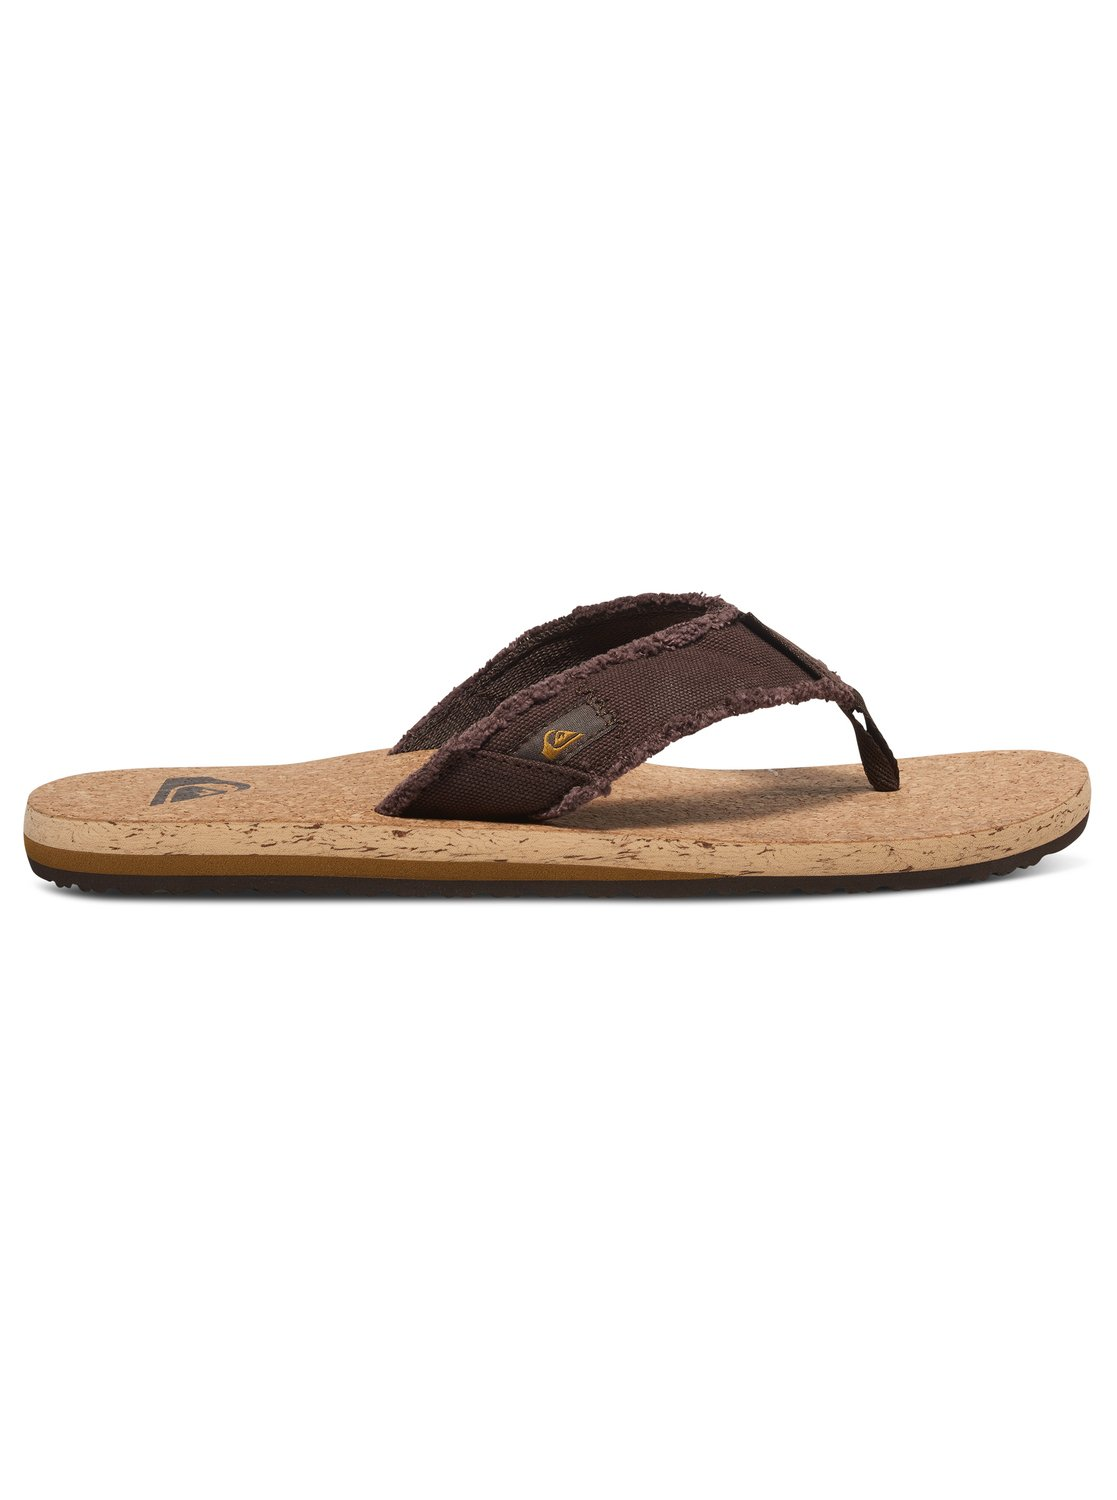 Tongs Quiksilver Monkey Abyss Cork